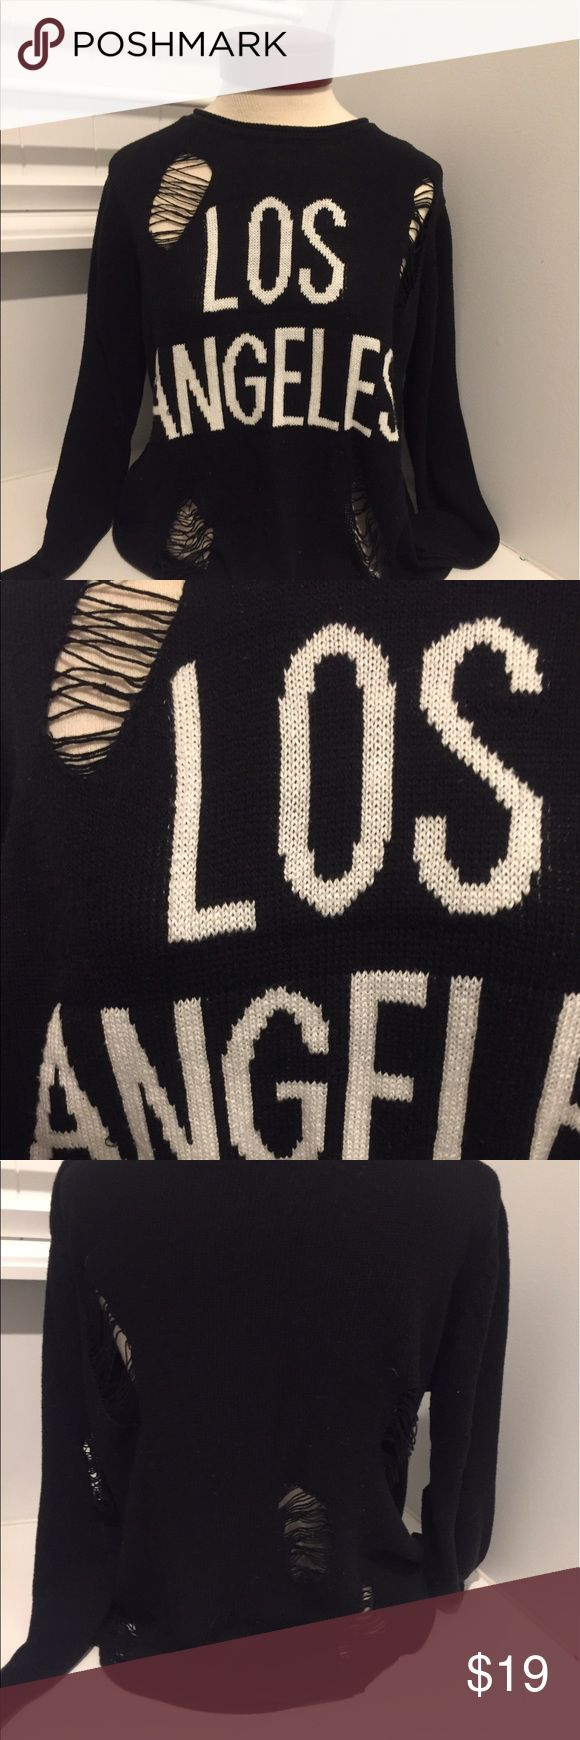 Forever 21 limited edition Los Angeles sweater S Size small limited edition Forever 21 Sweaters Crew & Scoop Necks